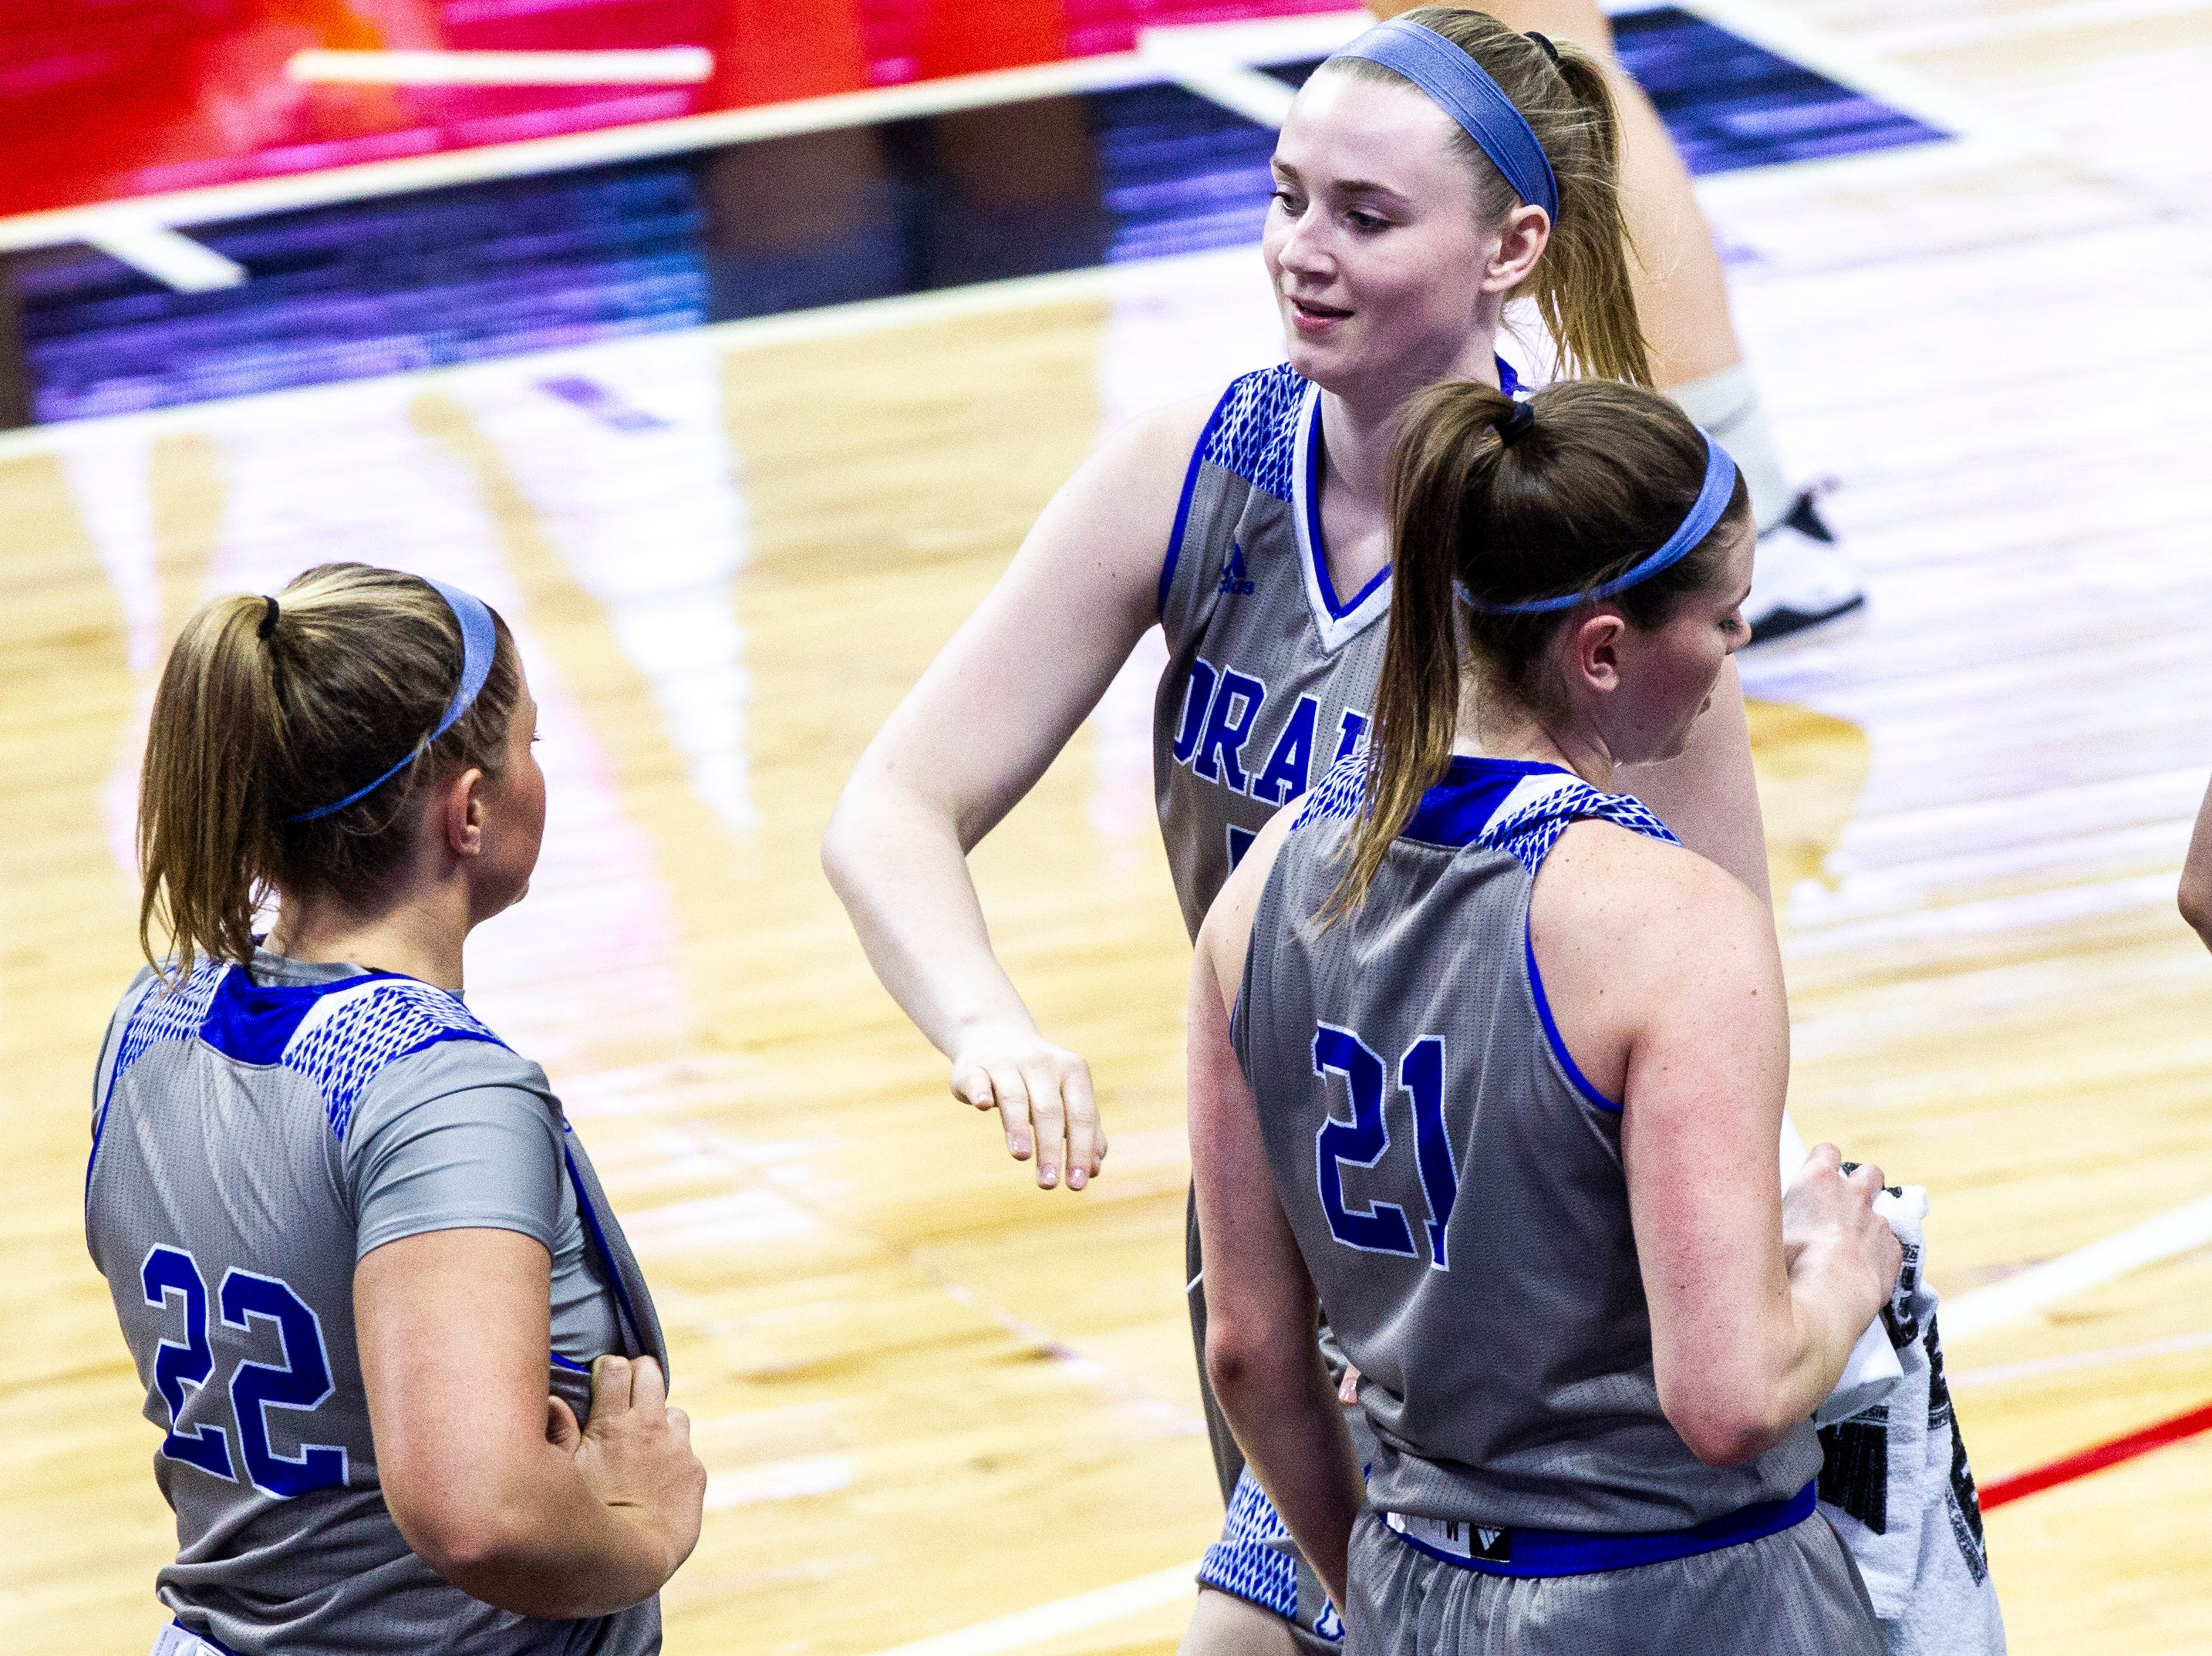 Drake's Mya Mertz high-fives teammates while heading to the bench during a NCAA Missouri Valley Conference women's basketball quarterfinal tournament game, Friday, March 15, 2019, at the TaxSlayer Center in Moline, Illinois.